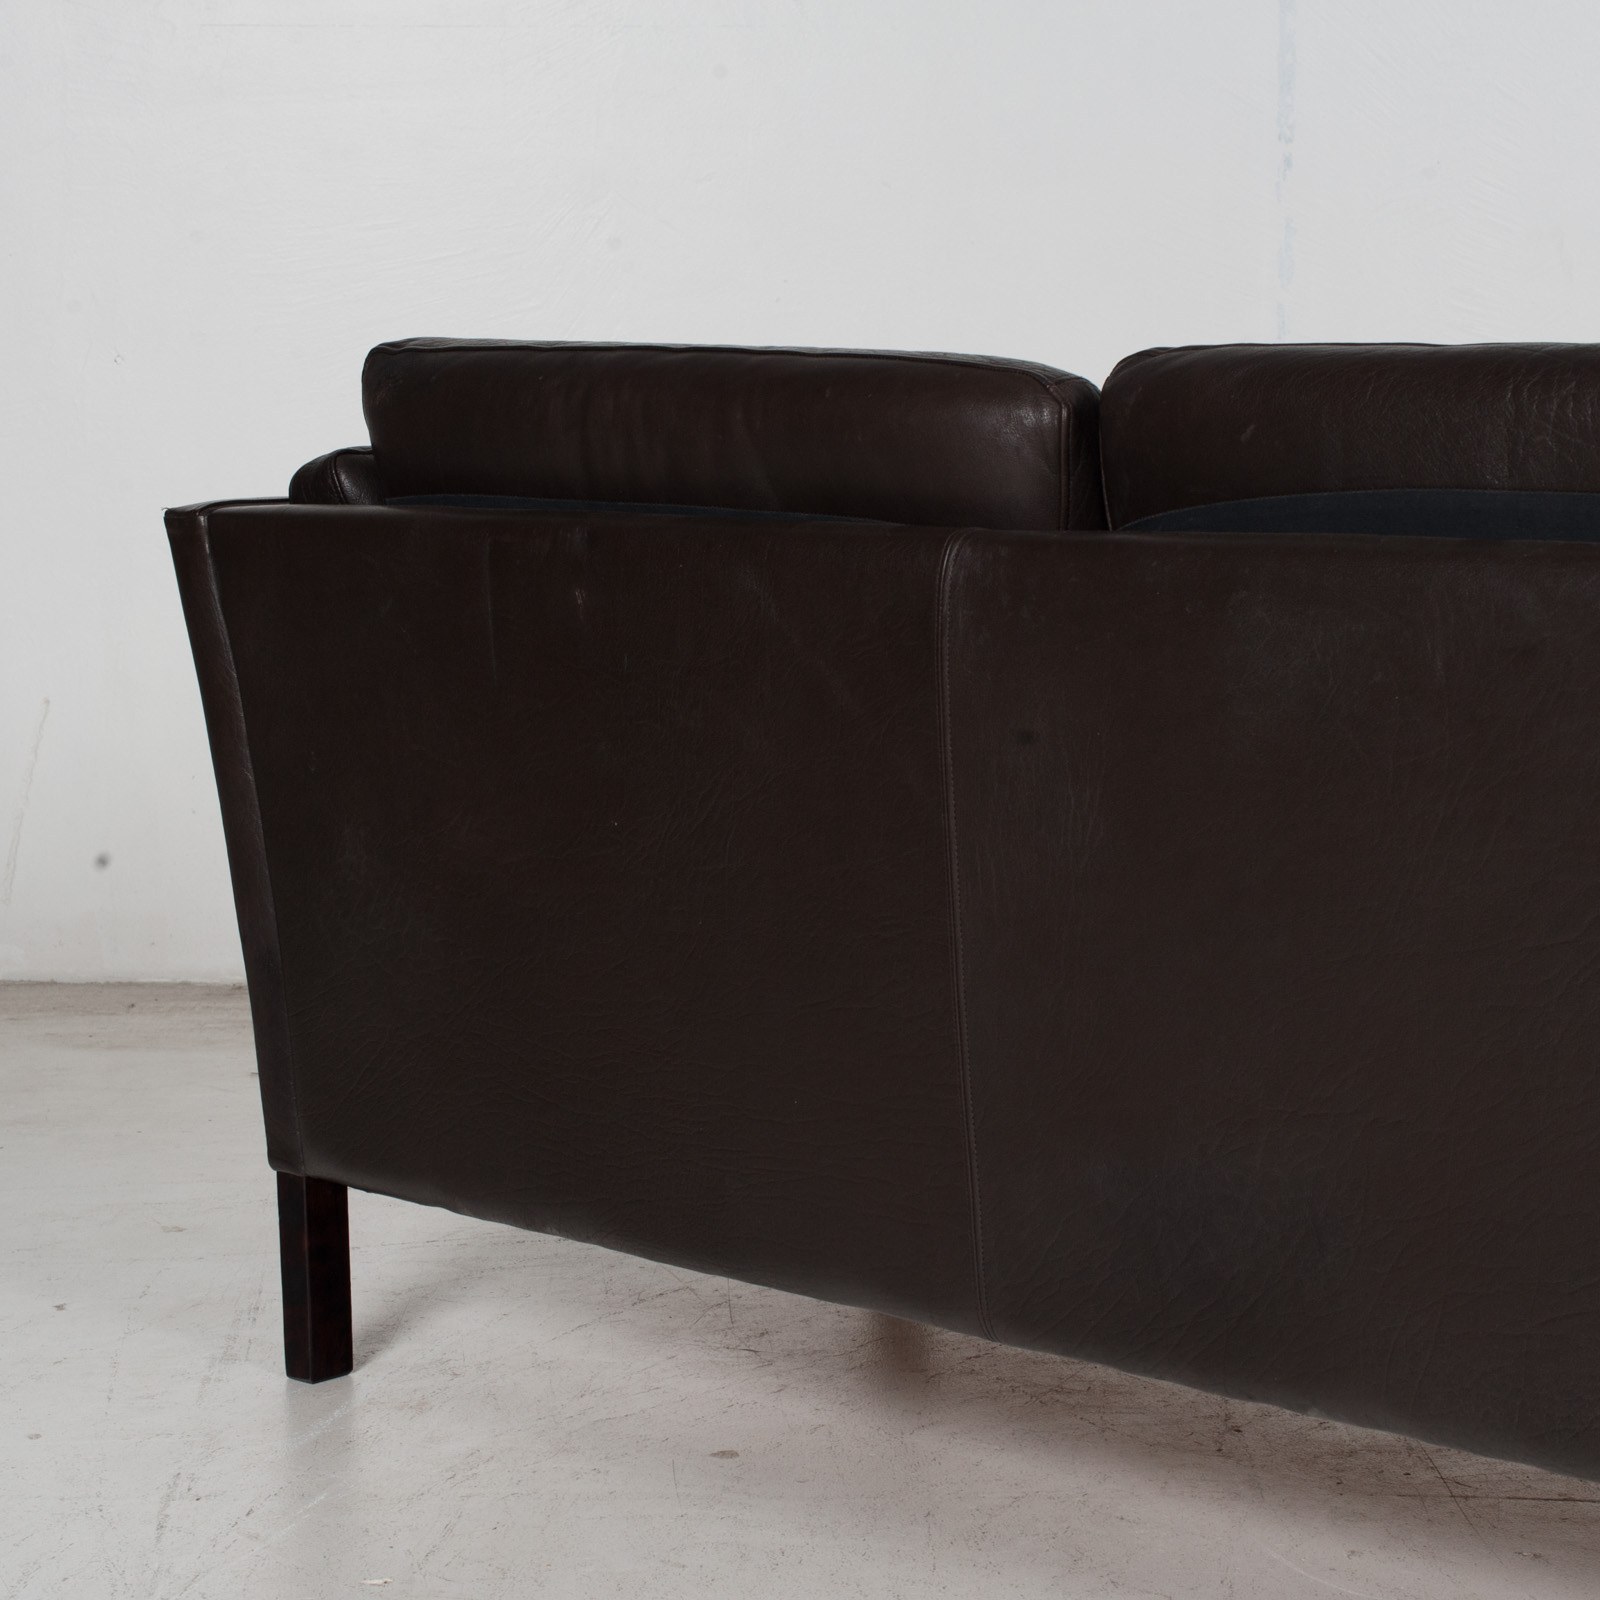 3 Seat Sofa In Dark Brown Leather, 1960s, Denmark 10